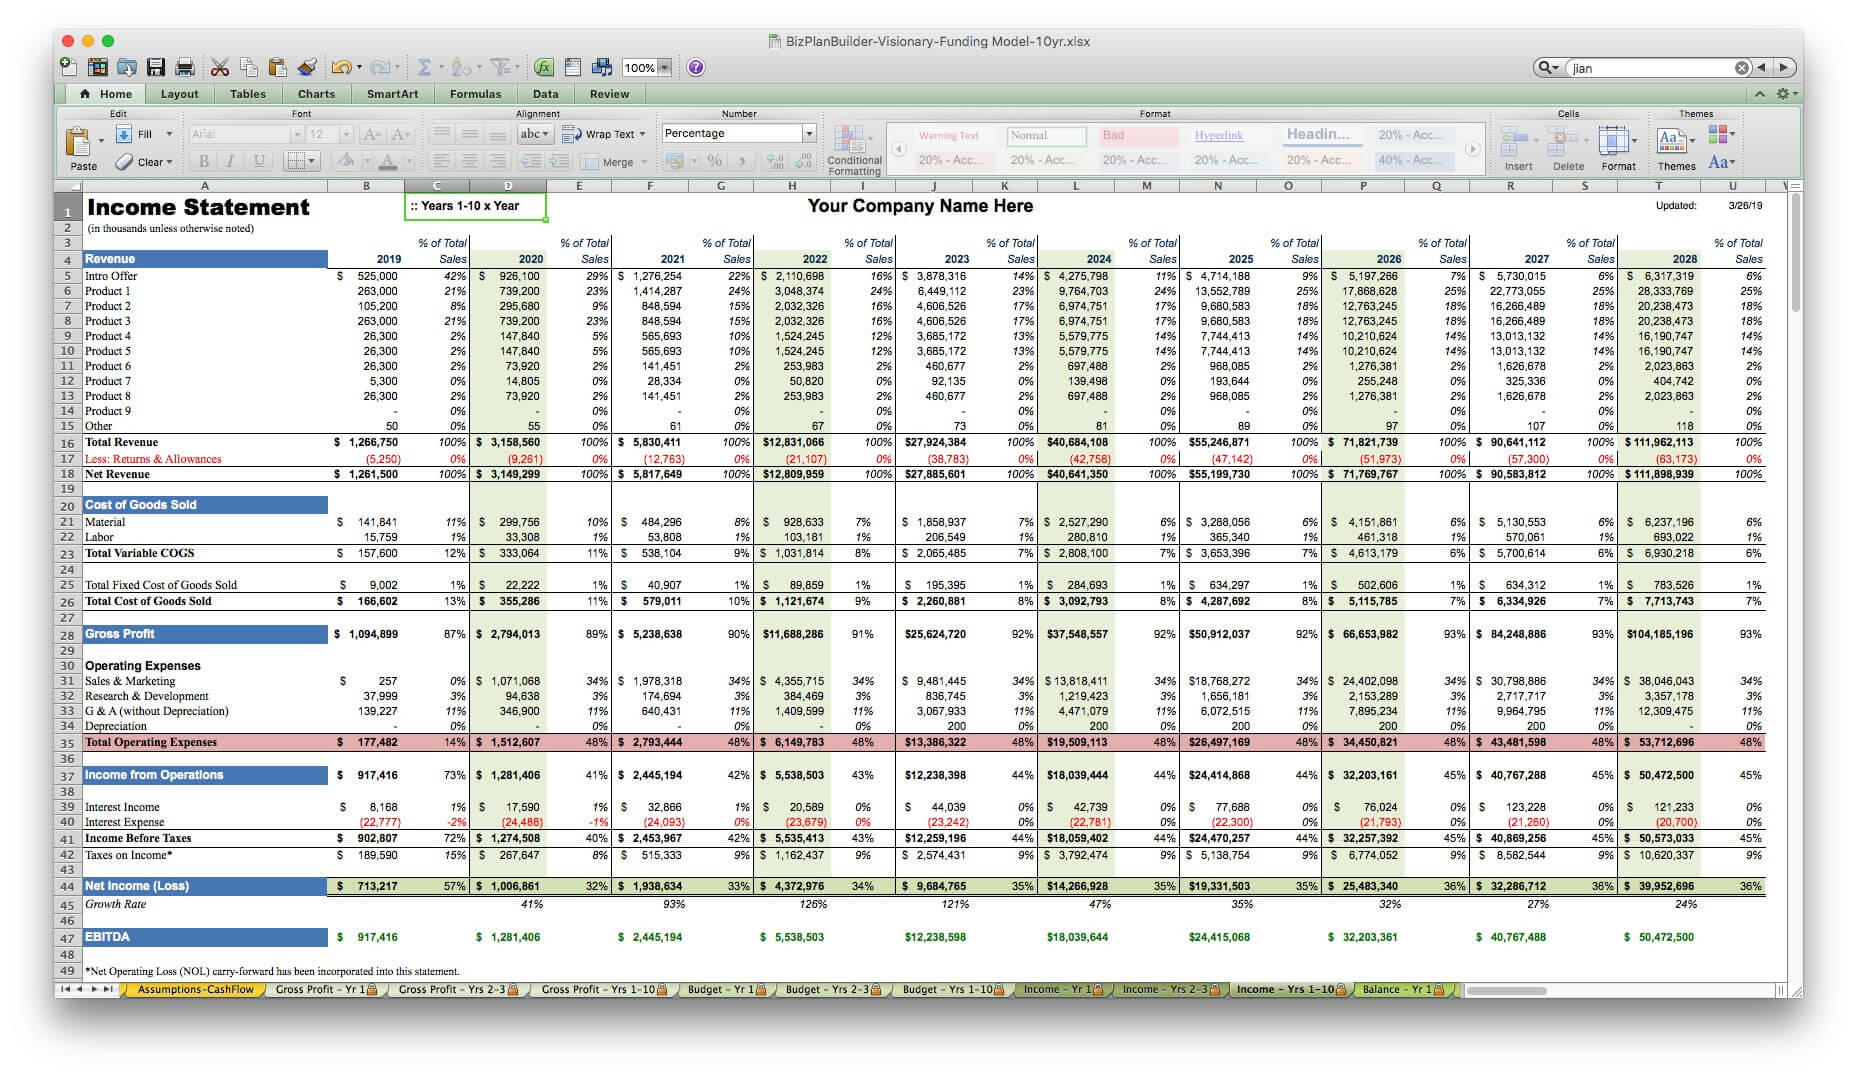 001 Financial Forecast Spreadsheet Template Business Plan Intended For Business Forecast Spreadsheet Template